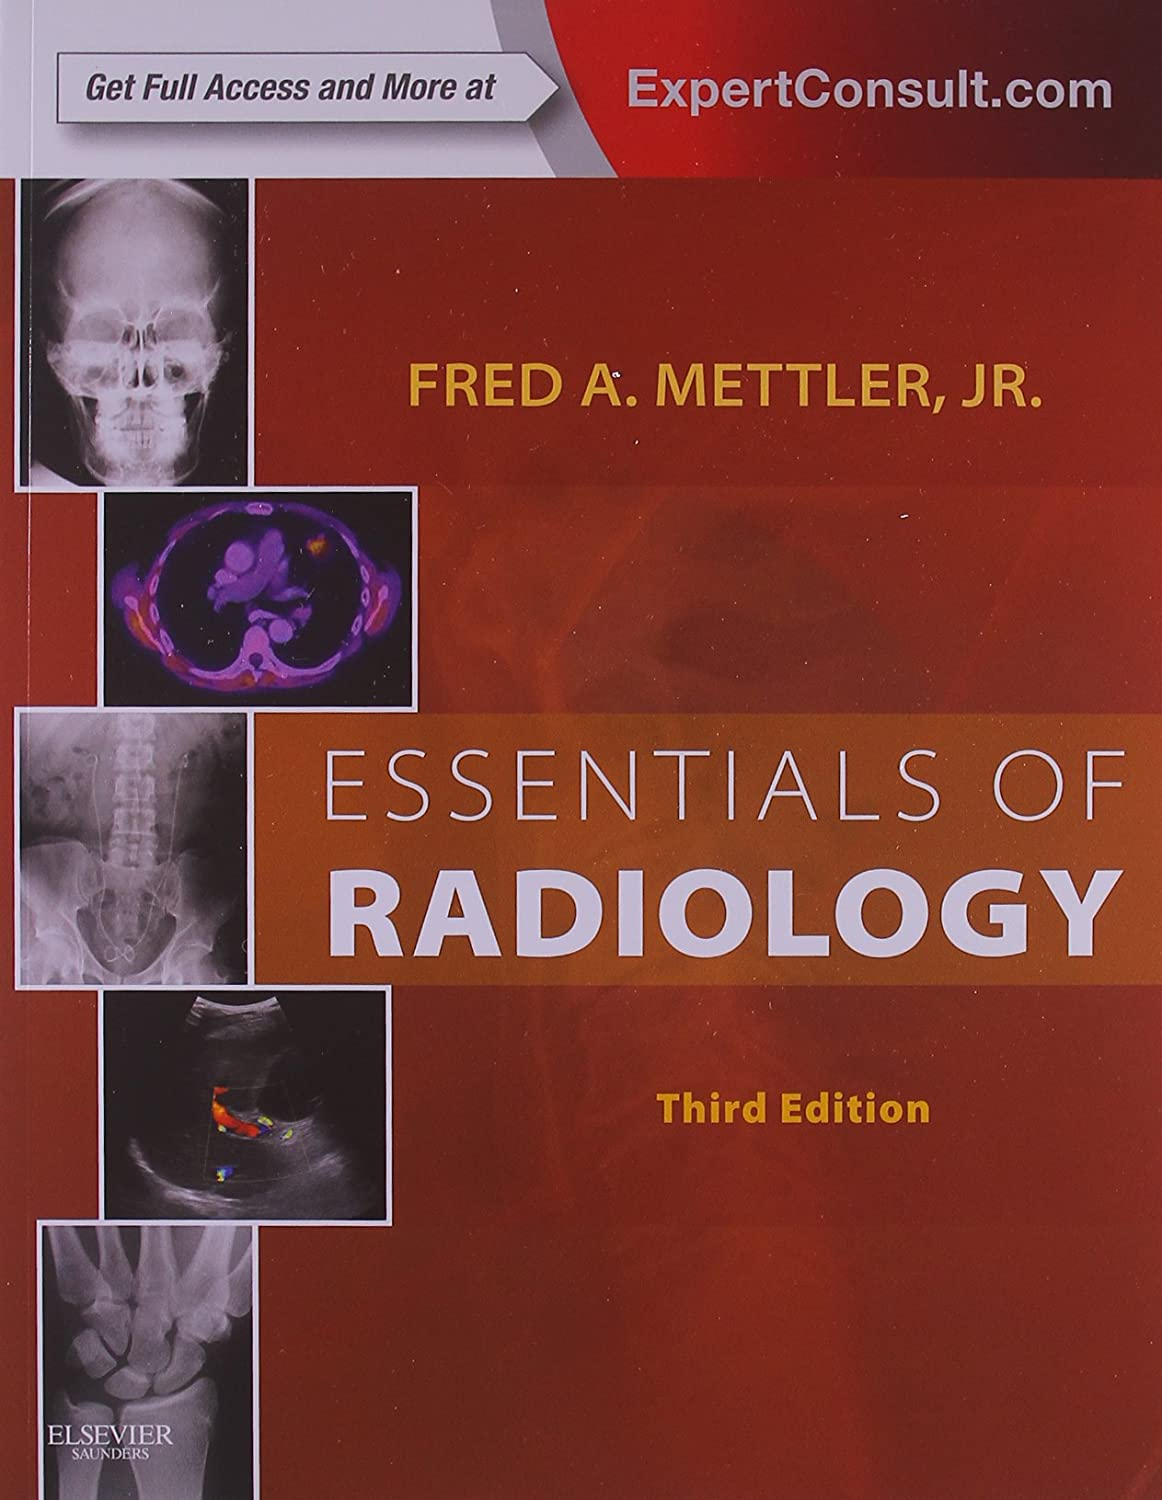 Essentials of Radiology: Expert Consult - Online and Print, 3e (Mettler, Essentials of Radiology) 71O8TmCr-gL._SL1500_